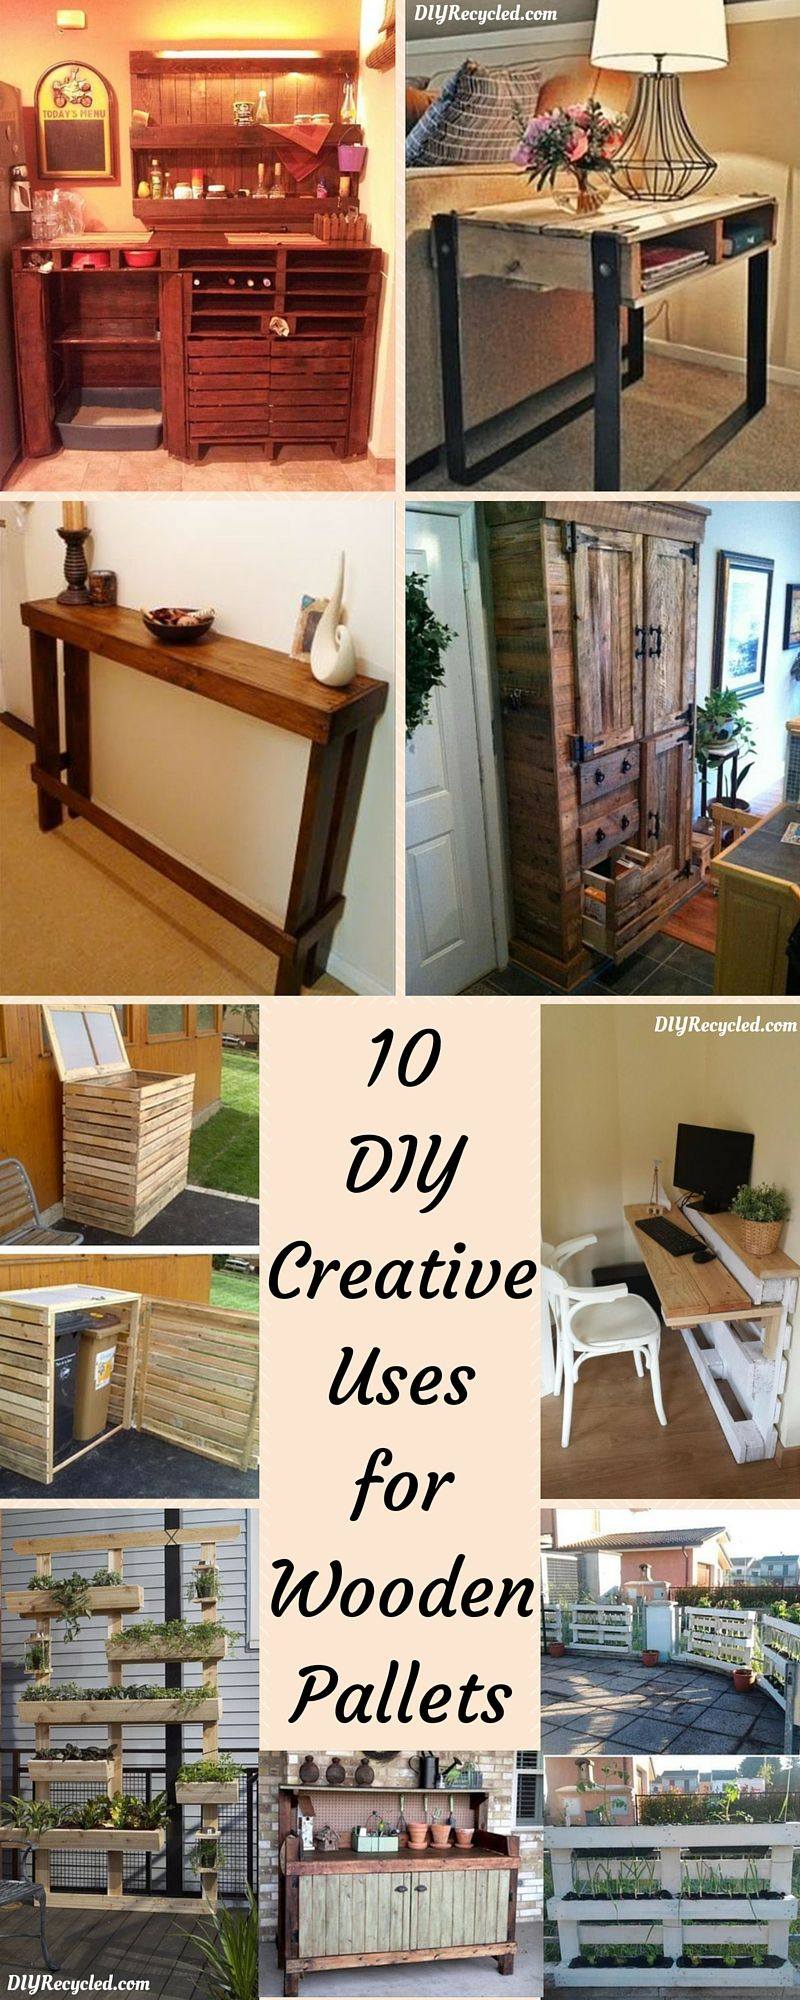 10 DIY Creative Uses For Wooden Pallets